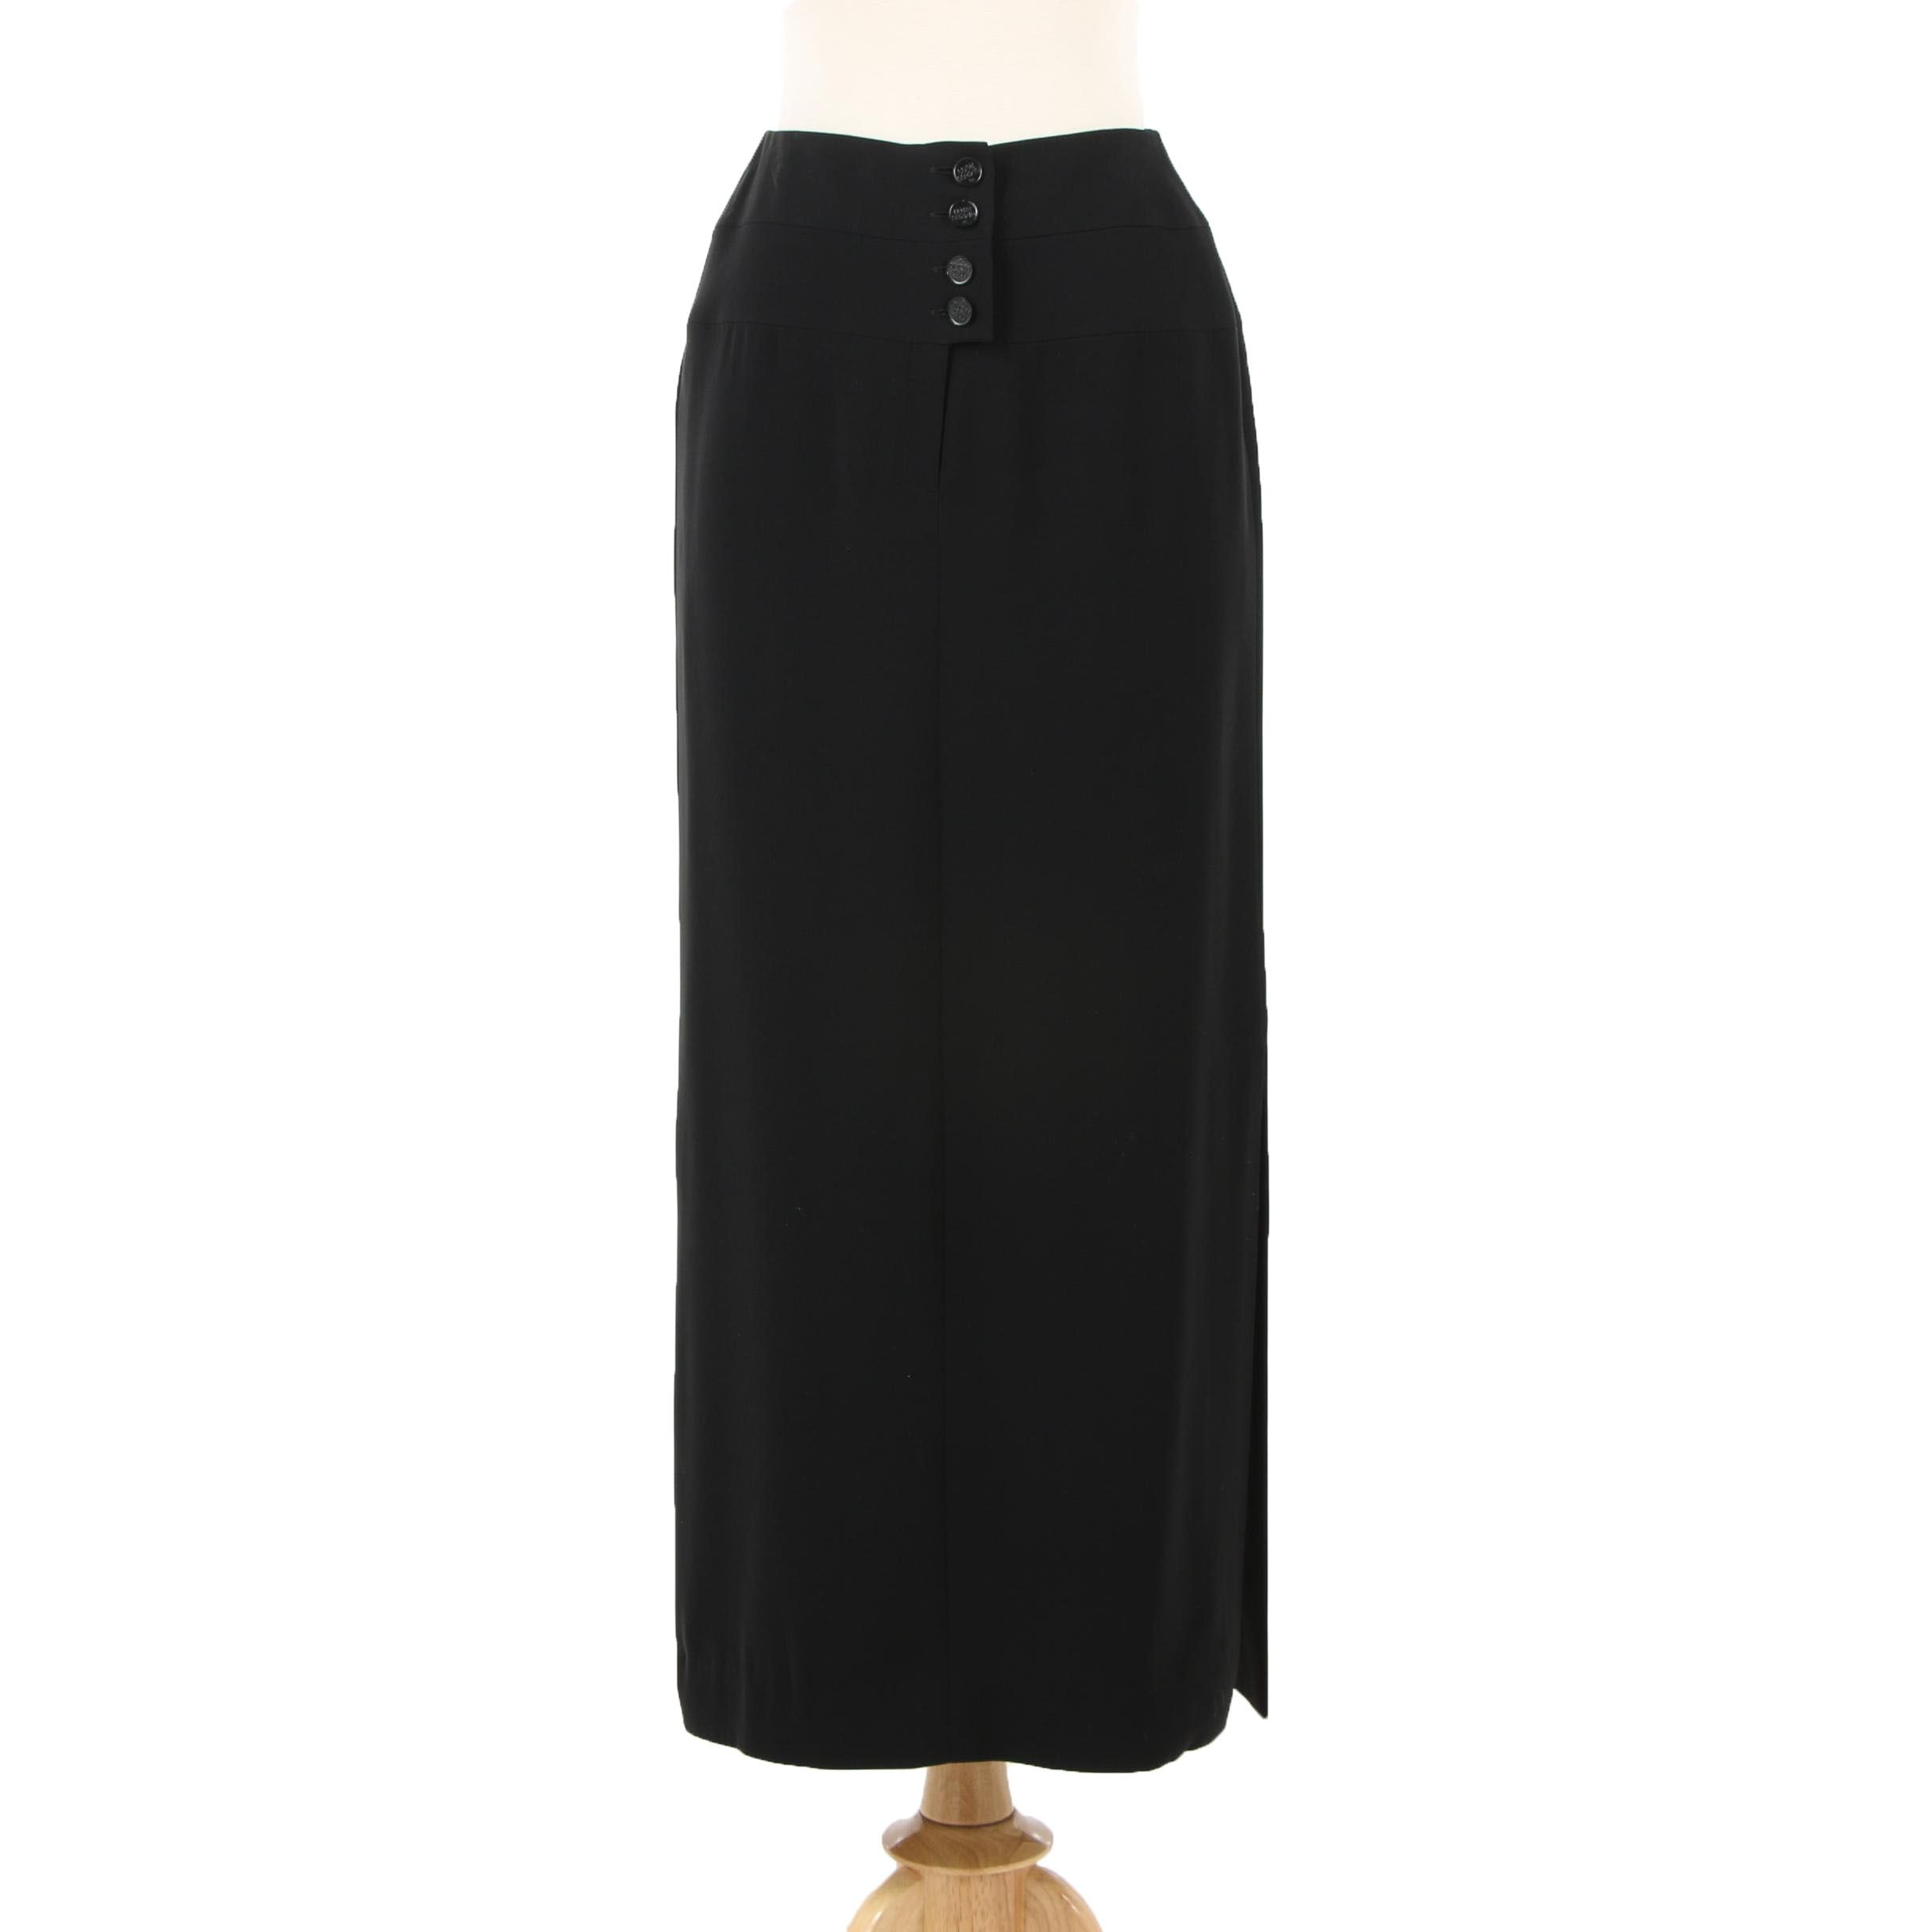 Chanel Boutique Black Maxi Skirt with Side Slit